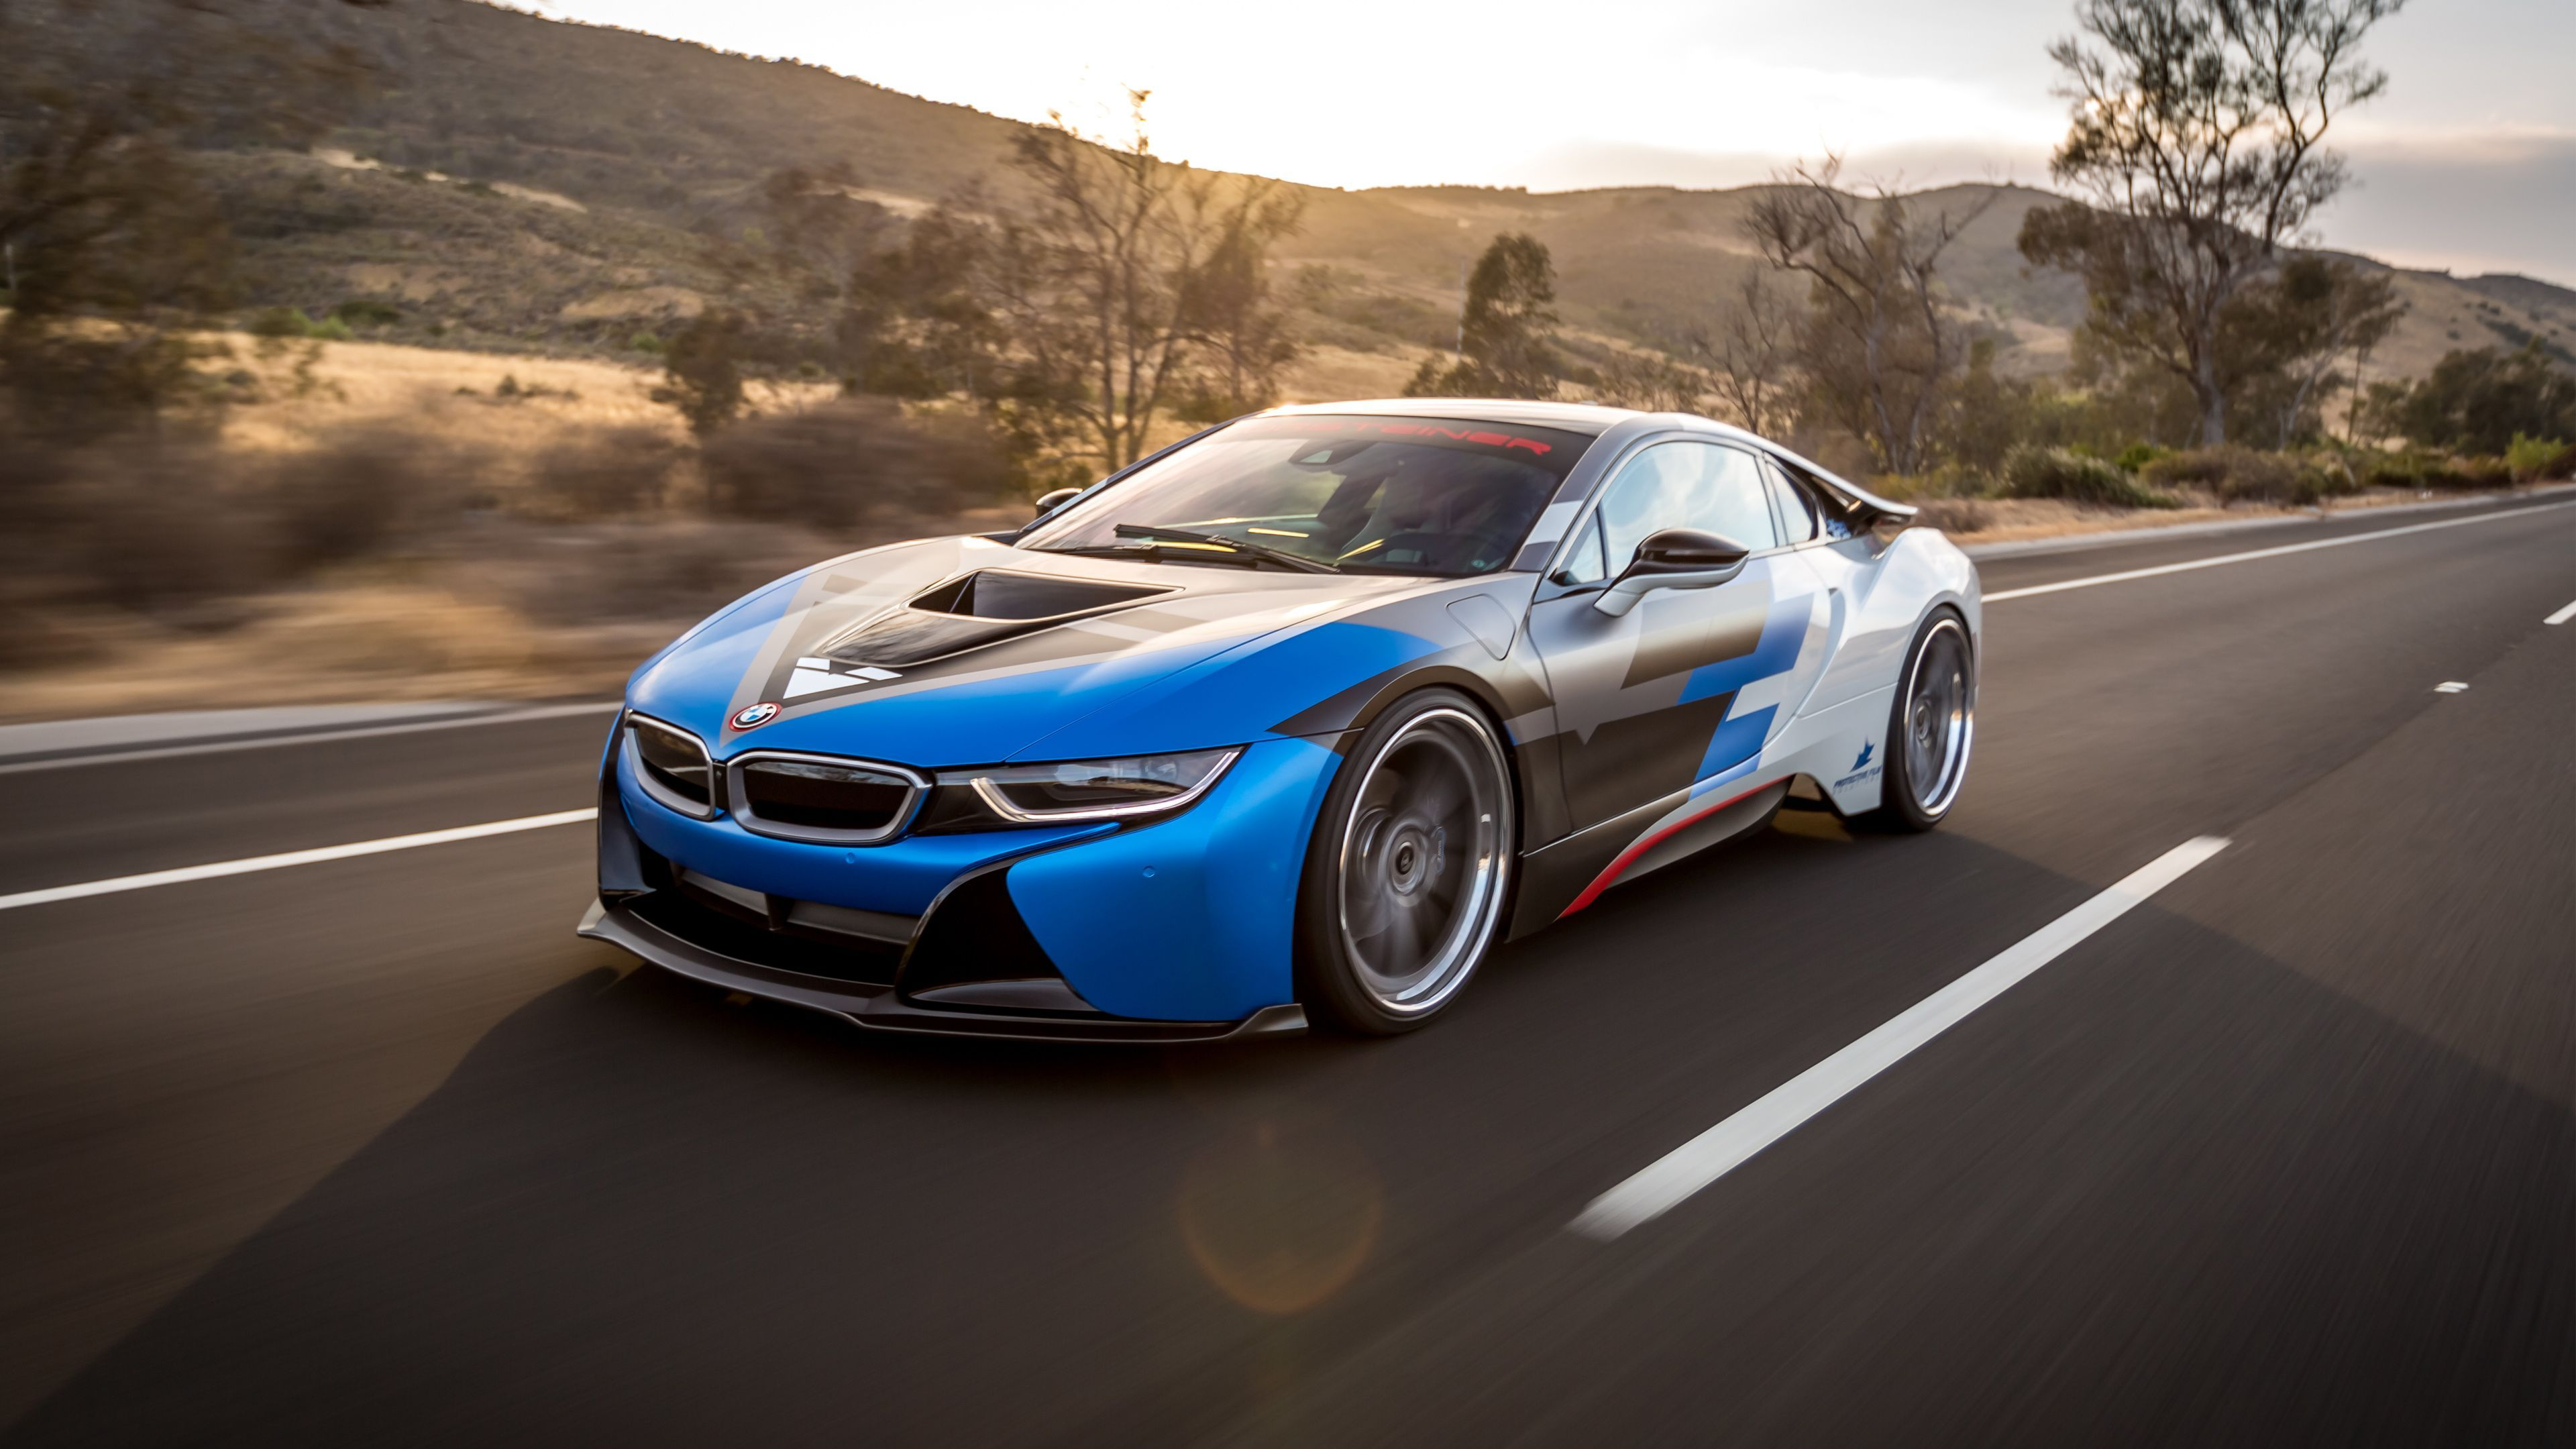 3840x2160 Bmw I8 Vorsteiner 4k Wallpaper Hd Car Wallpapers Id